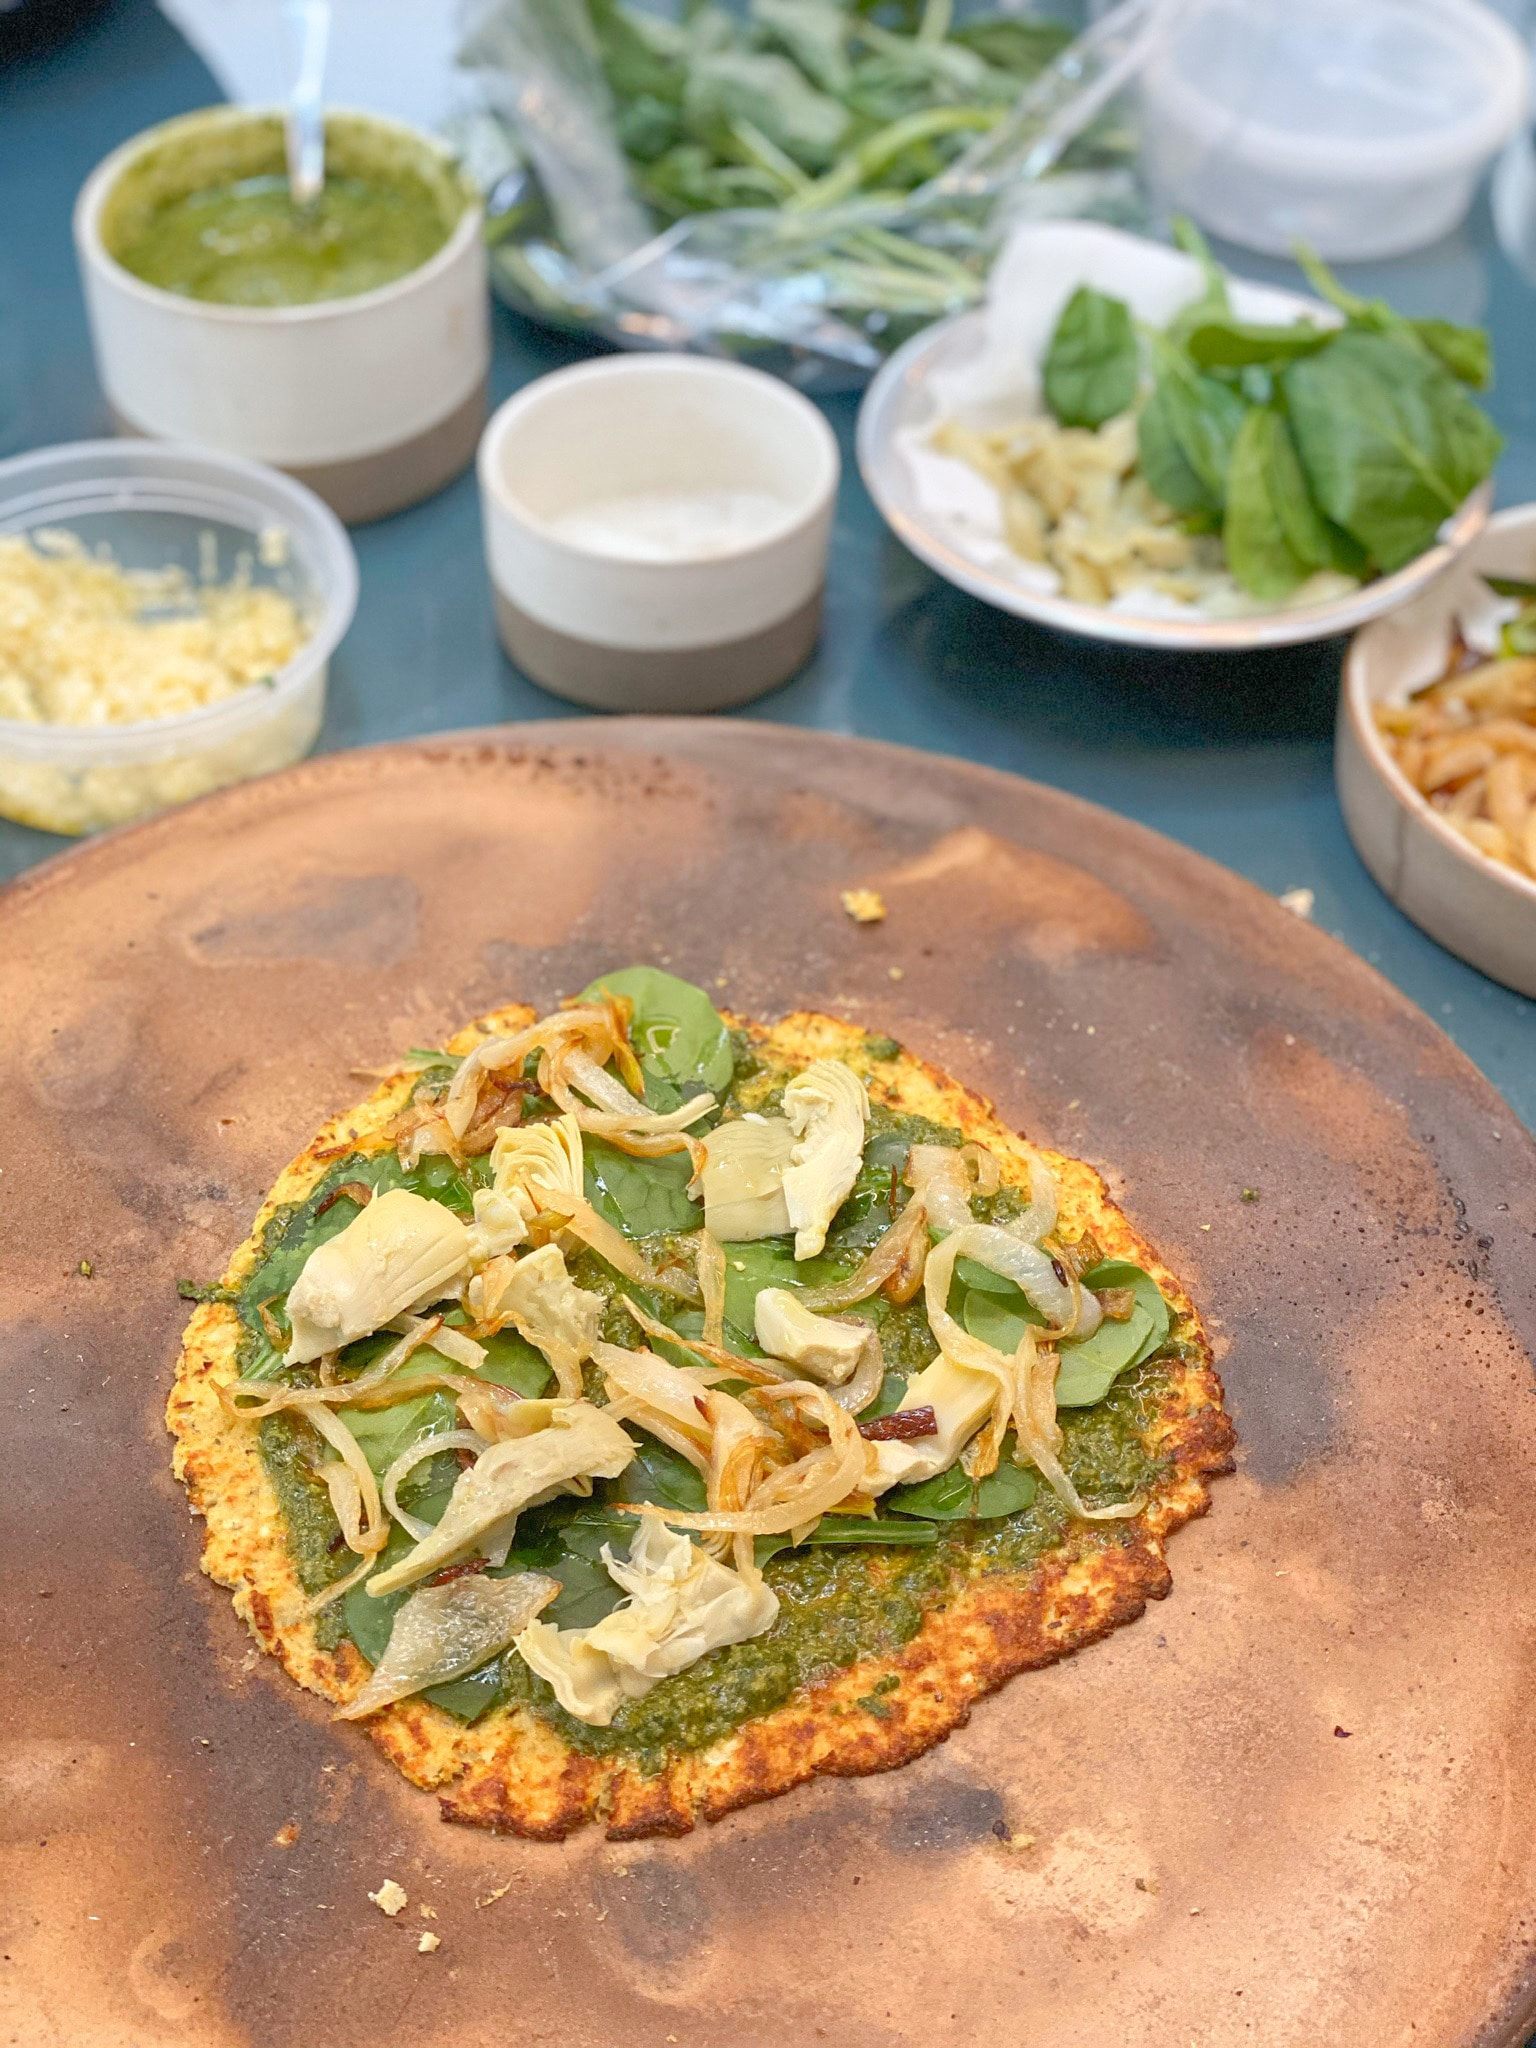 Homemade Cauliflower Pizza Crust